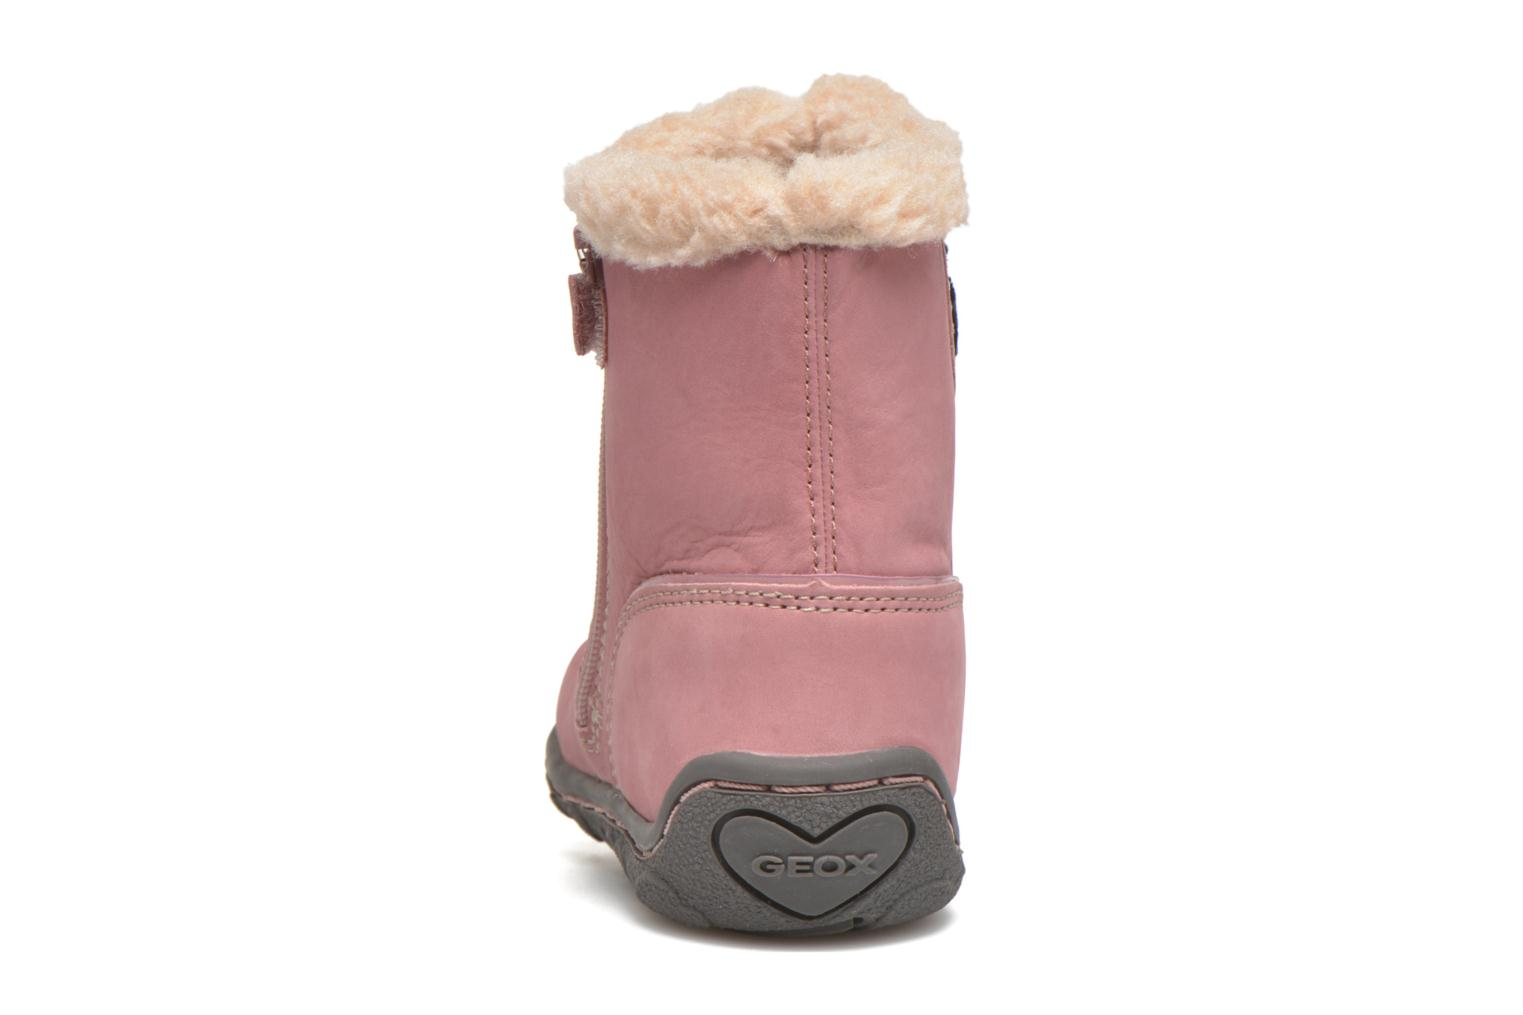 Bottes Geox B Lolly G Rose vue droite